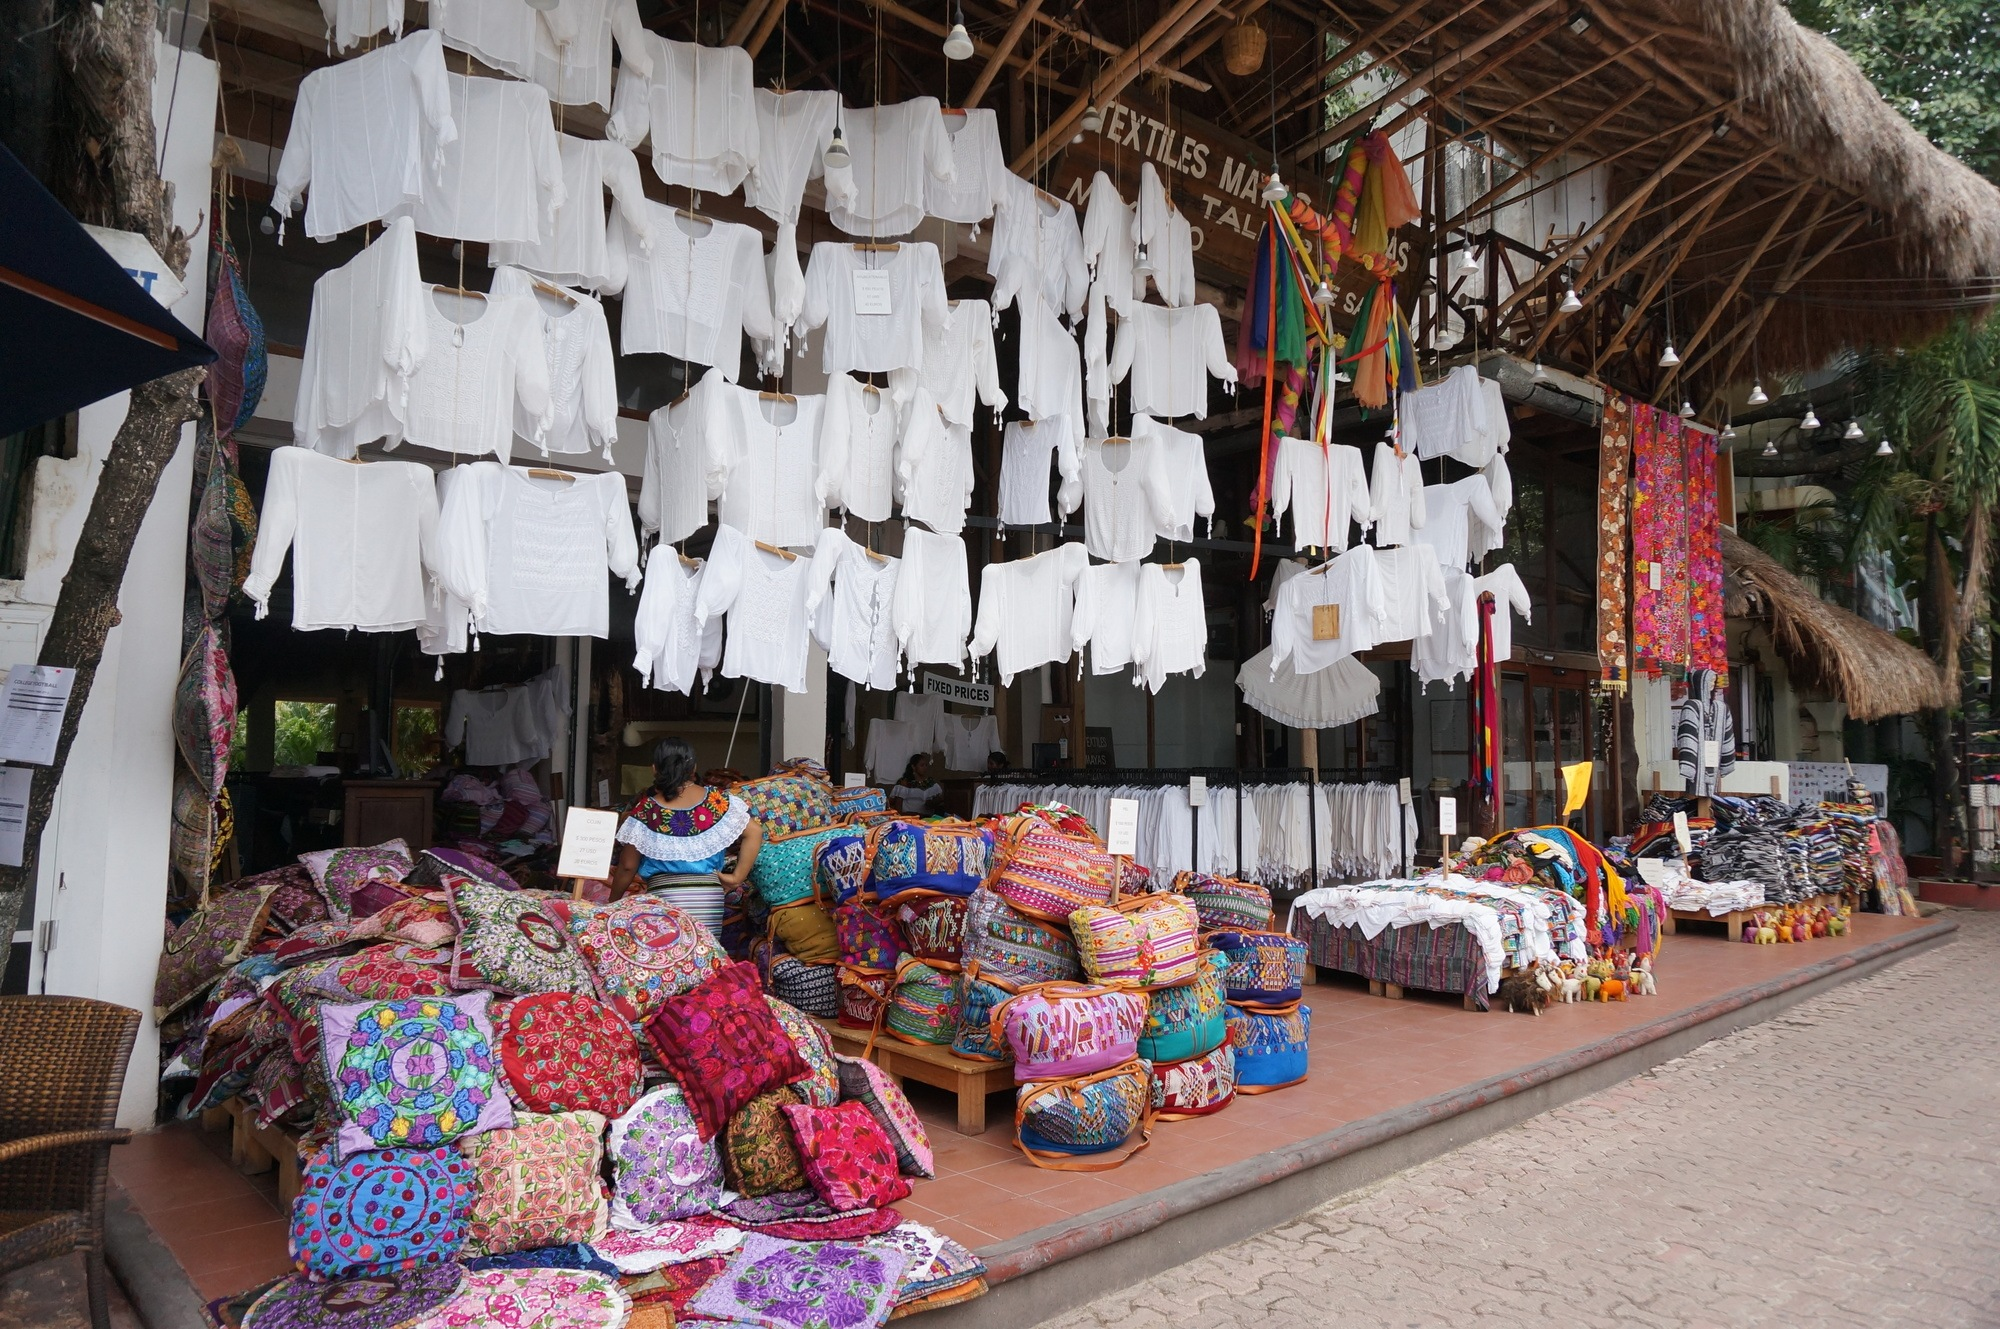 Top 42 Best Souvenirs and Gifts from Mexico to Bring Home